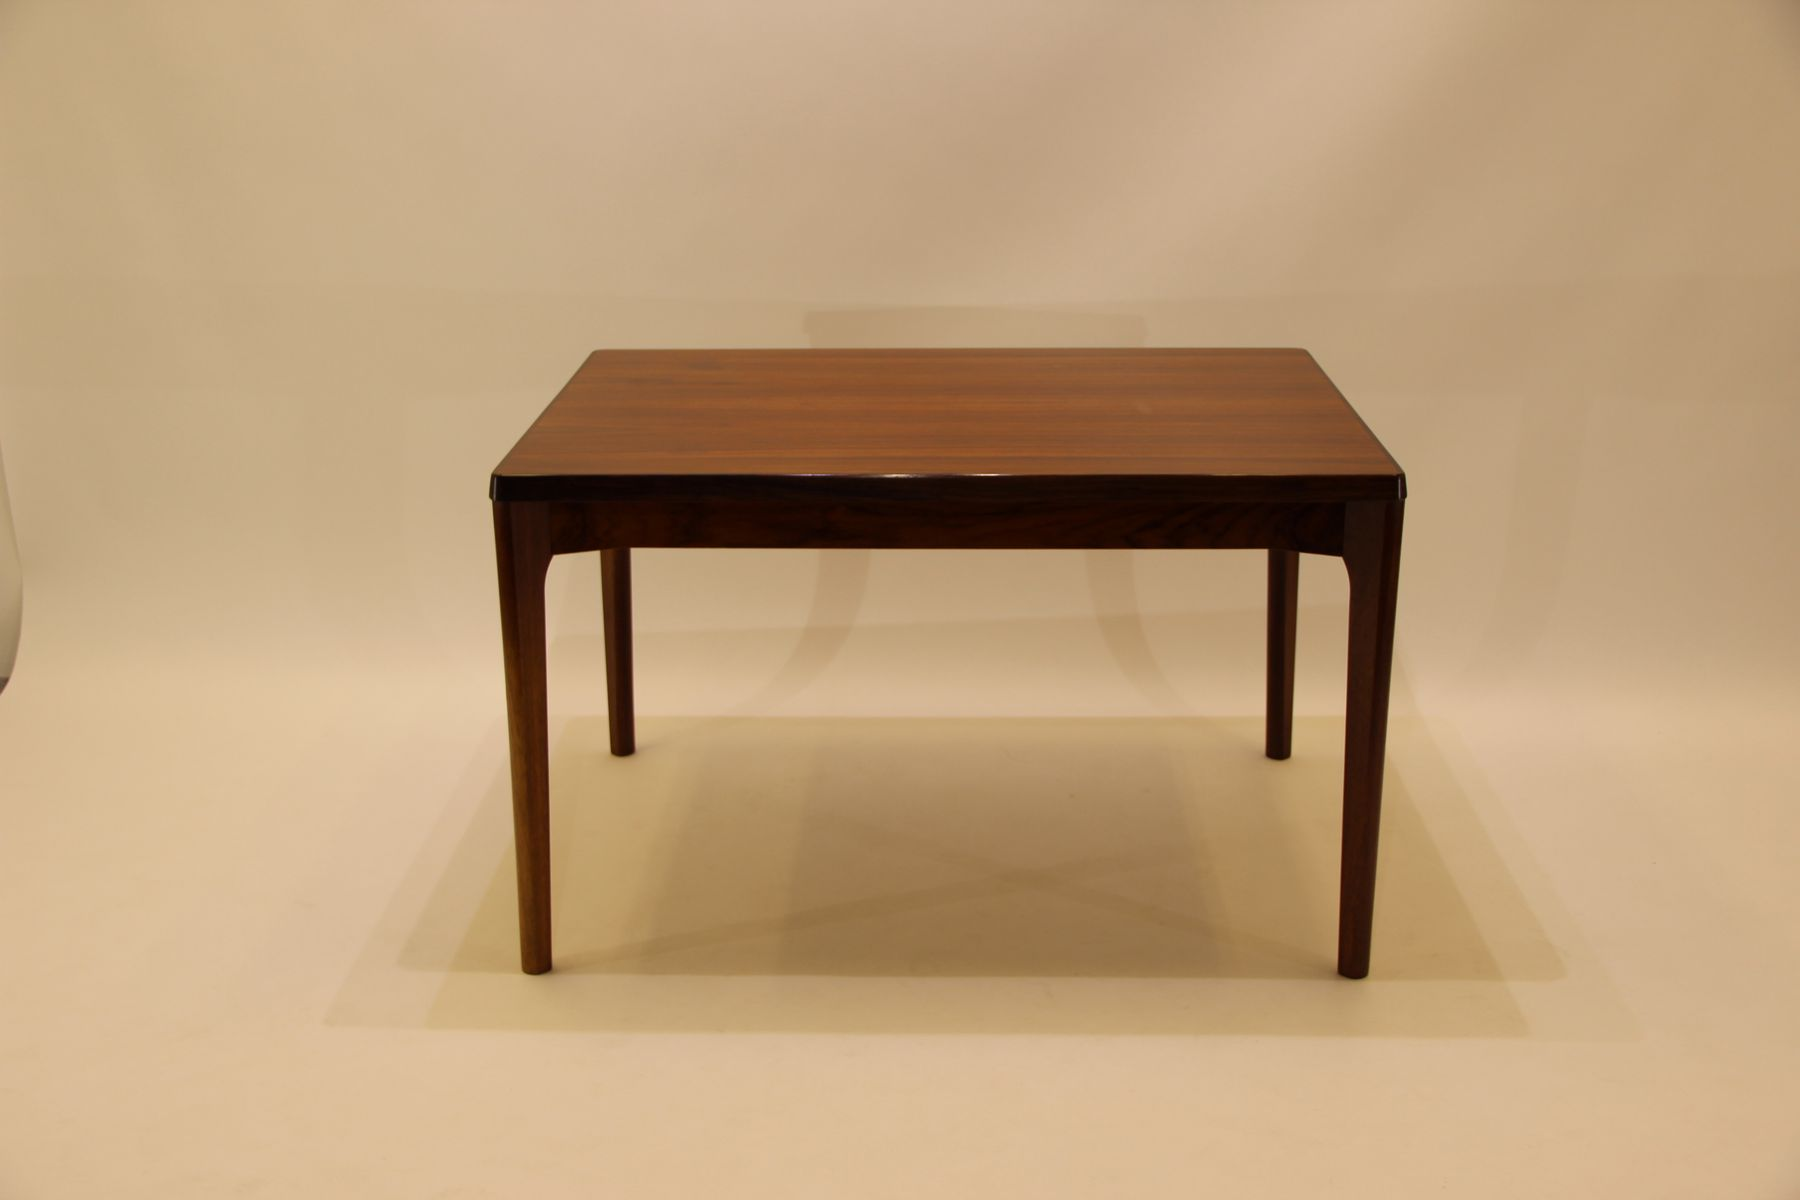 dining table material. mid-century rosewood dining table by henning kjærnulf for vejle moebelfabrik material